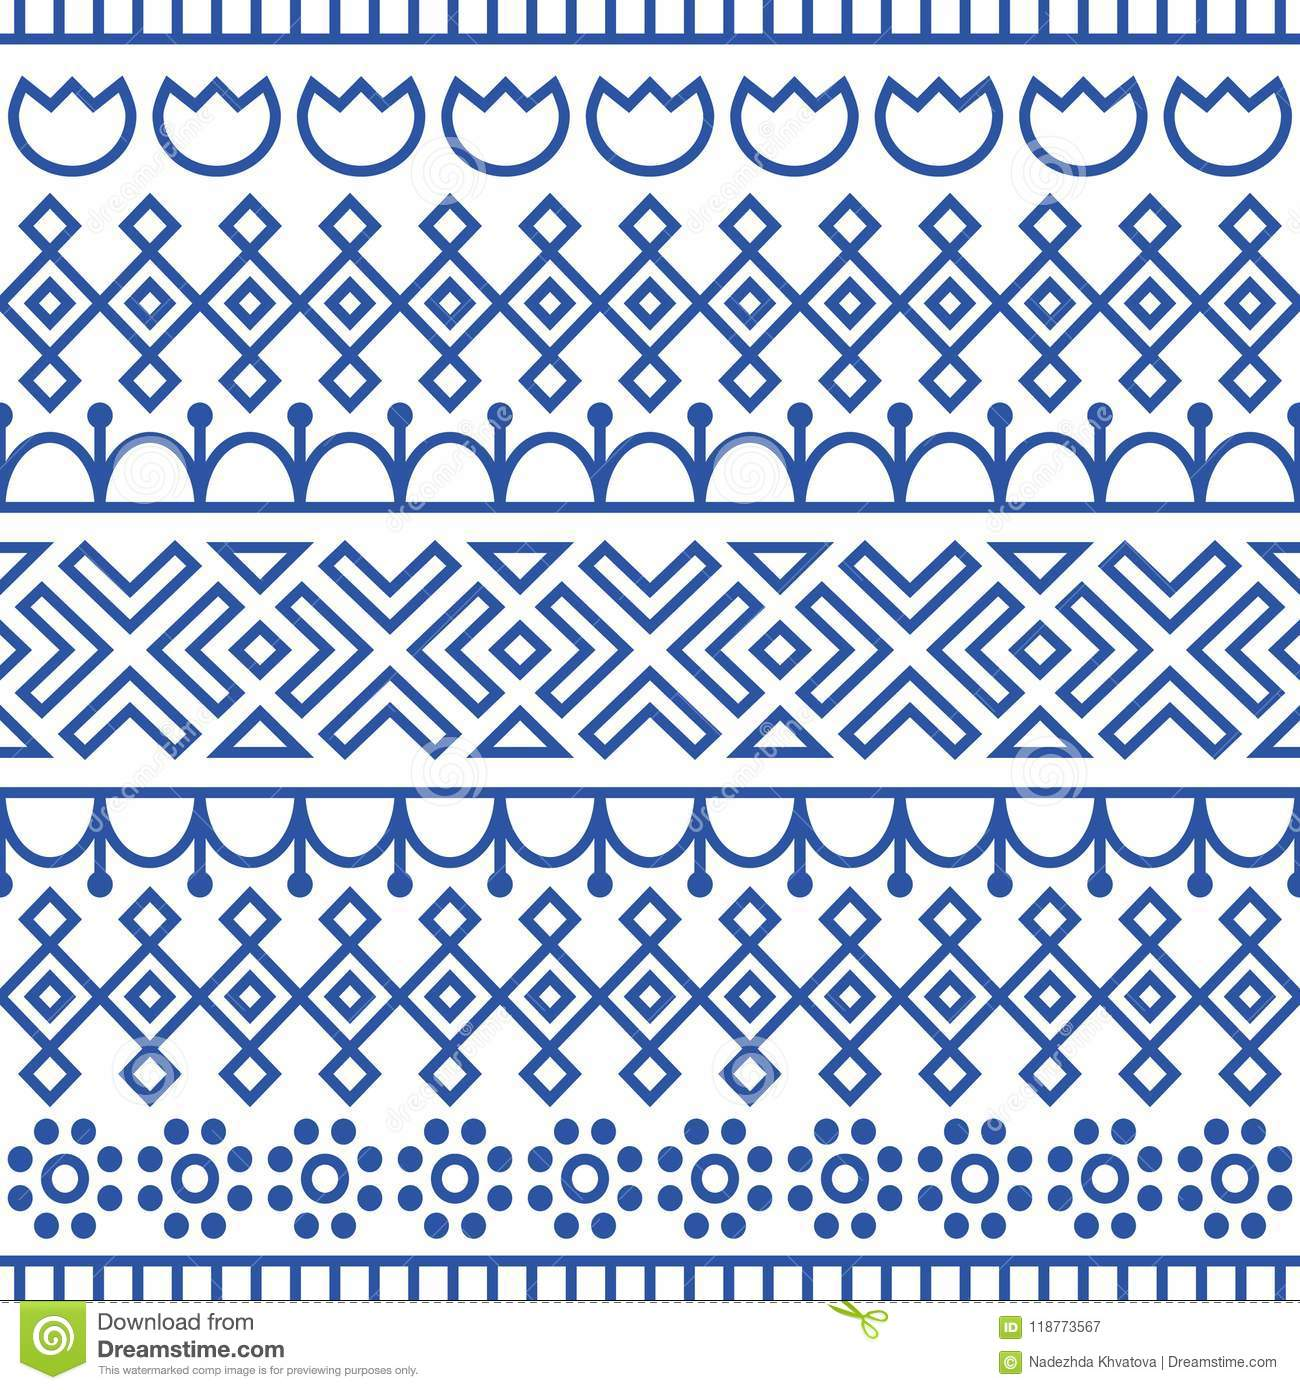 Seamless pattern inspired by scandinavian, finnish folk art. Nordic blue and white background. Repeated decoration